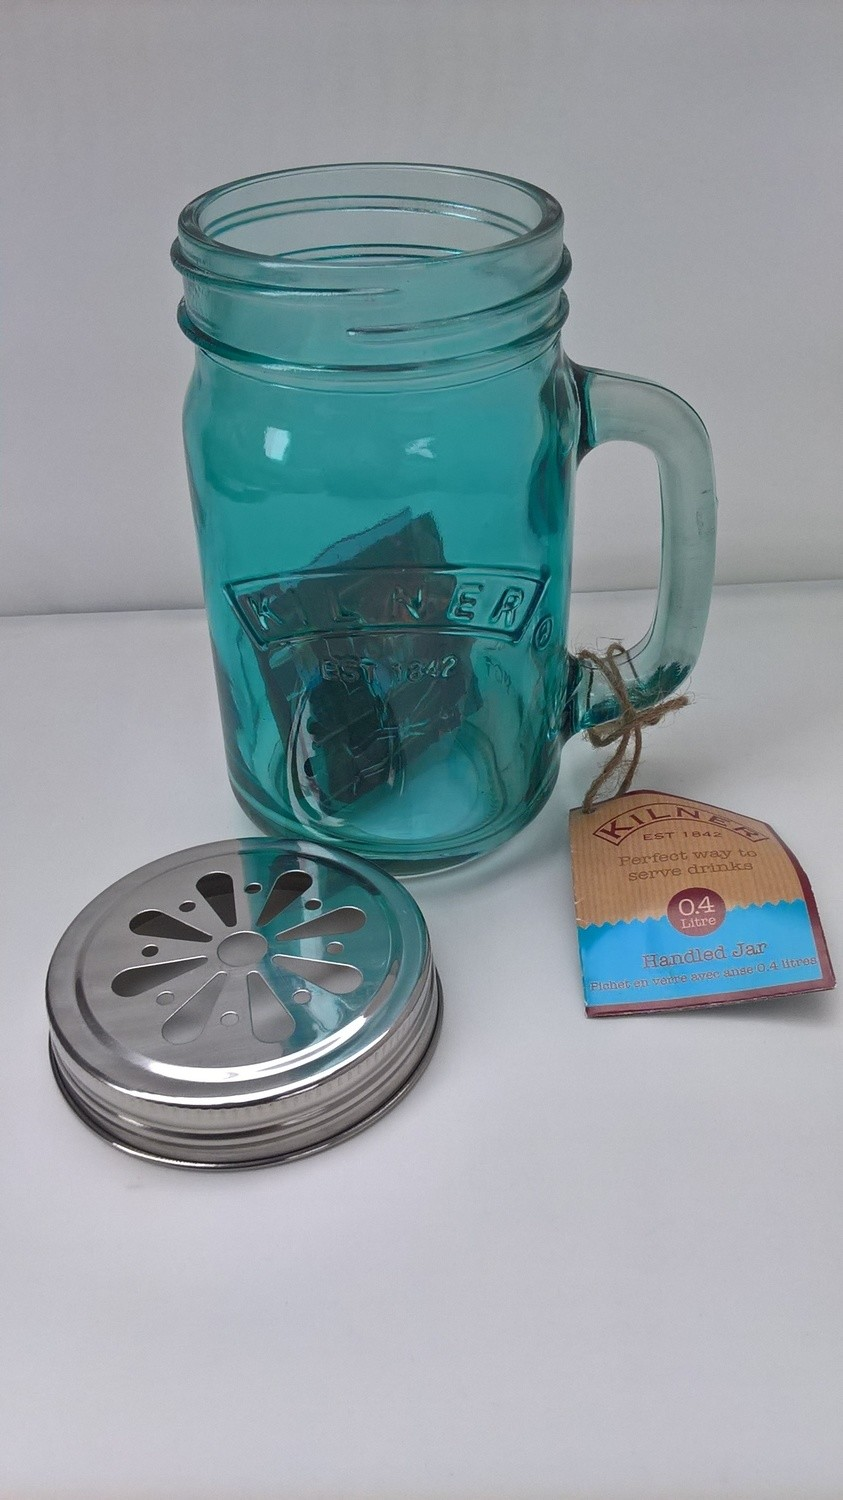 0.4ltr Kilner Blue Handled Drinking Jar